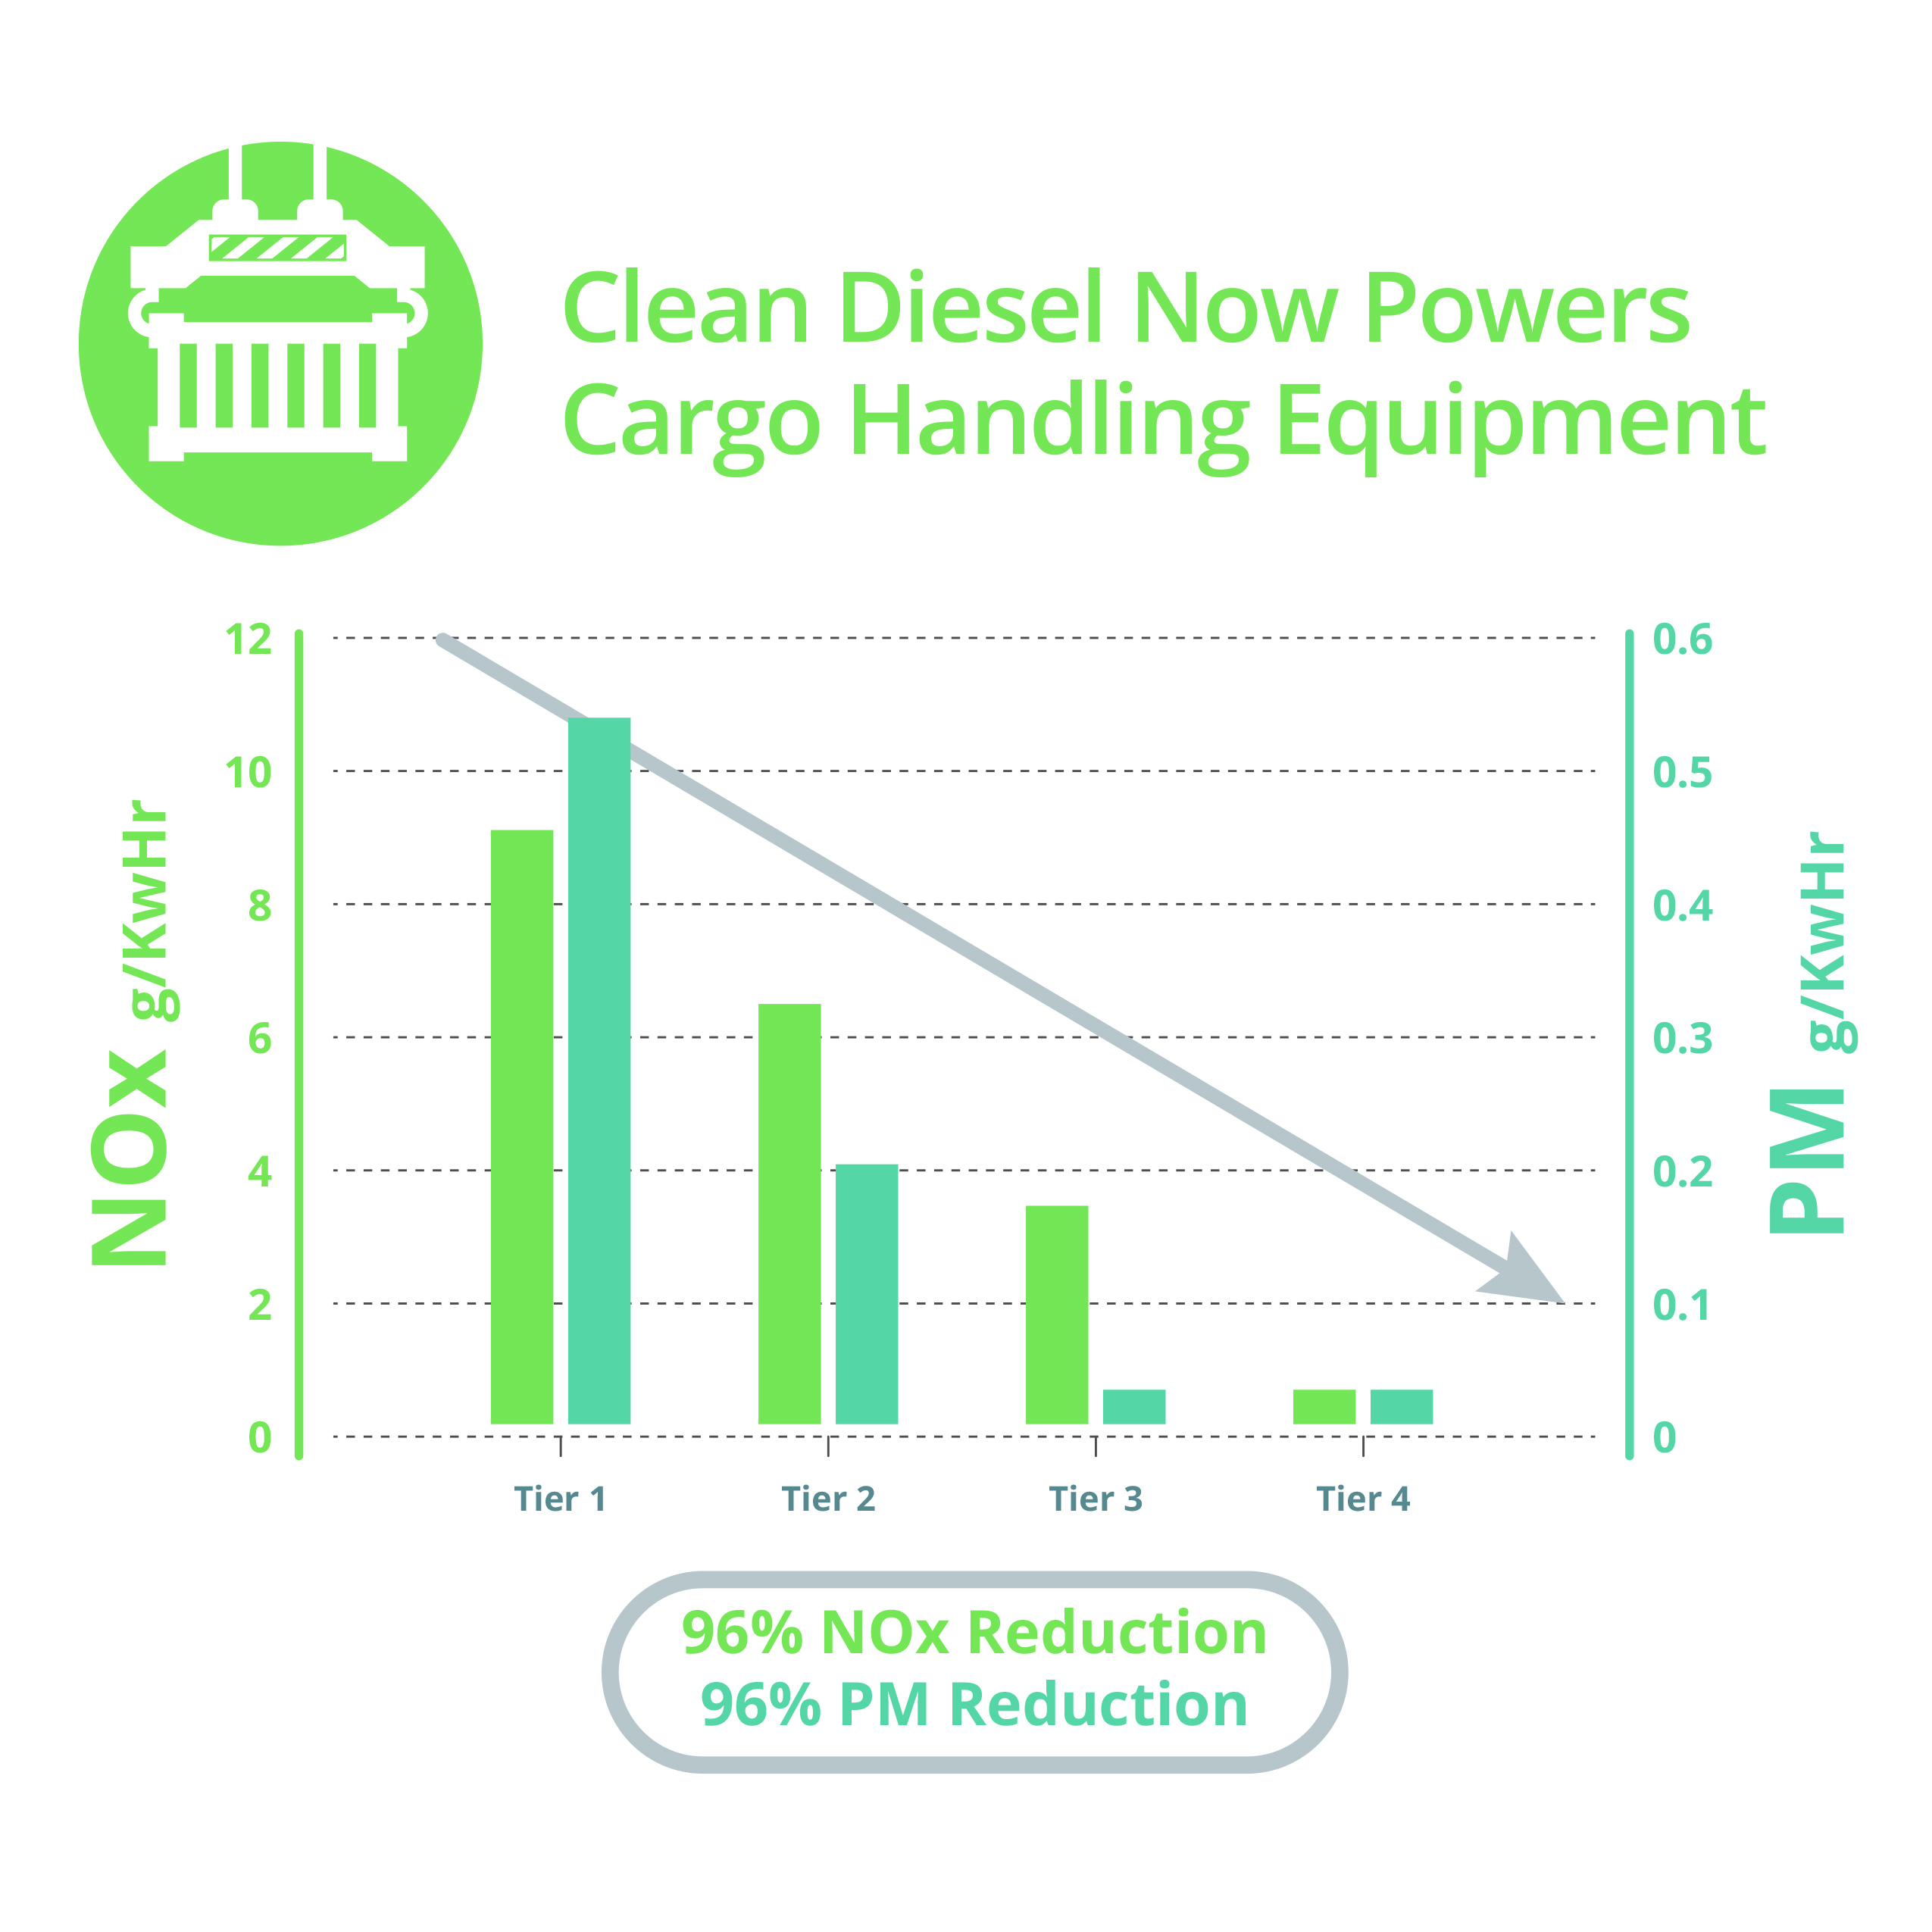 cargo-handling-equipment-graph